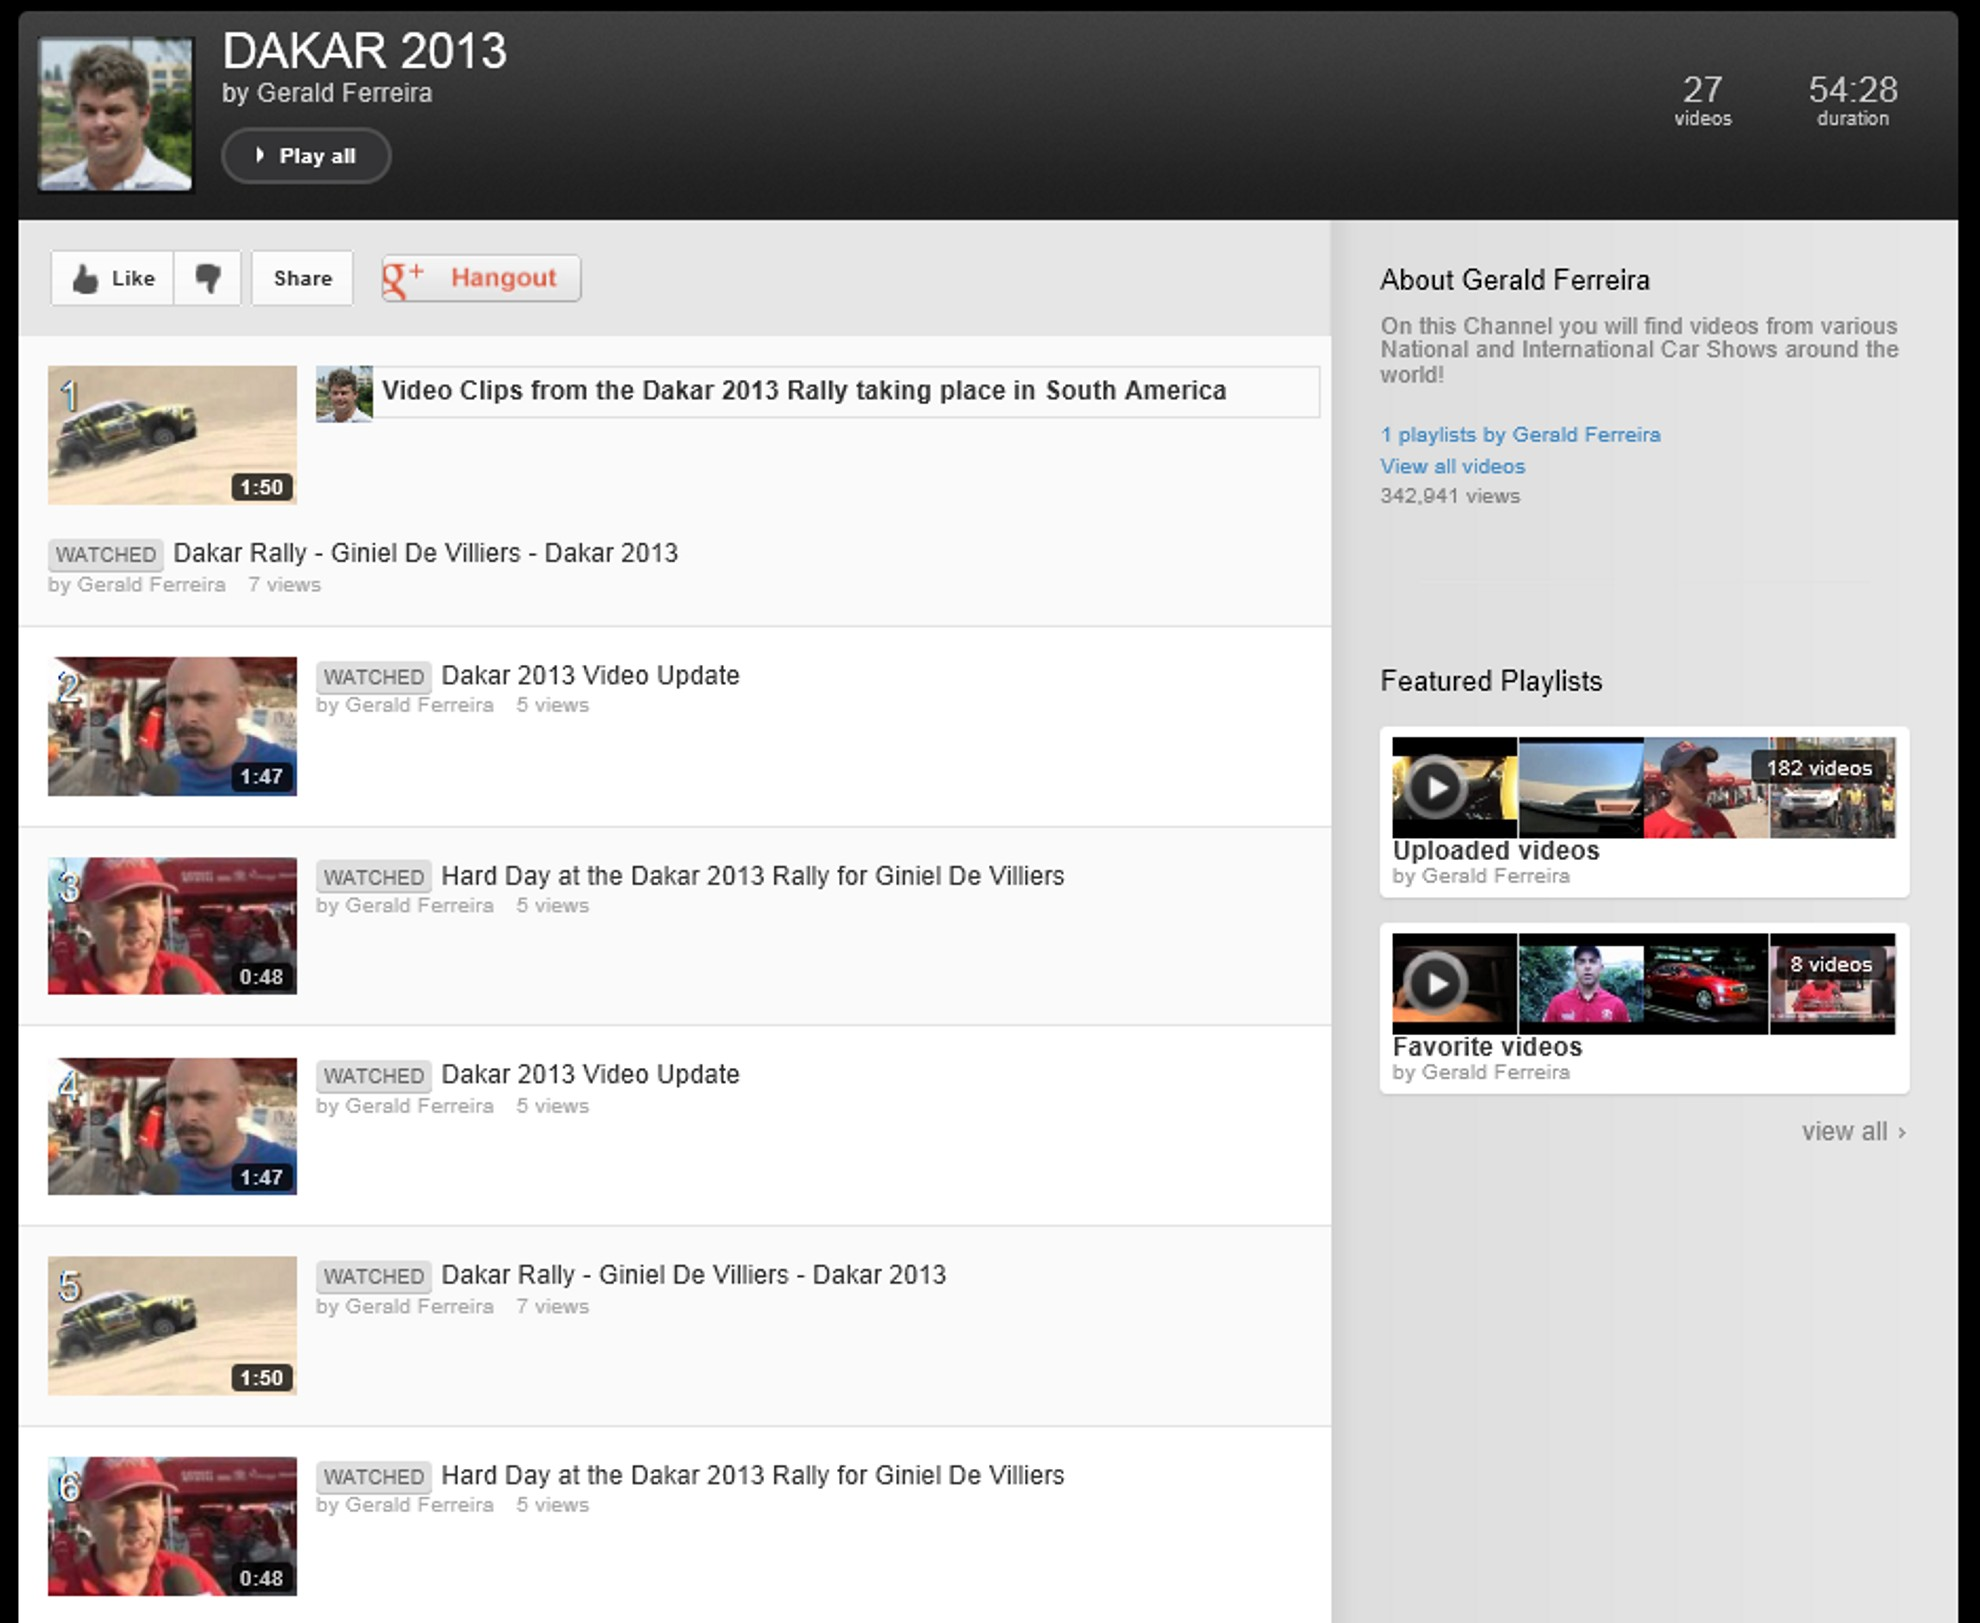 Dakar 2013 Youtube